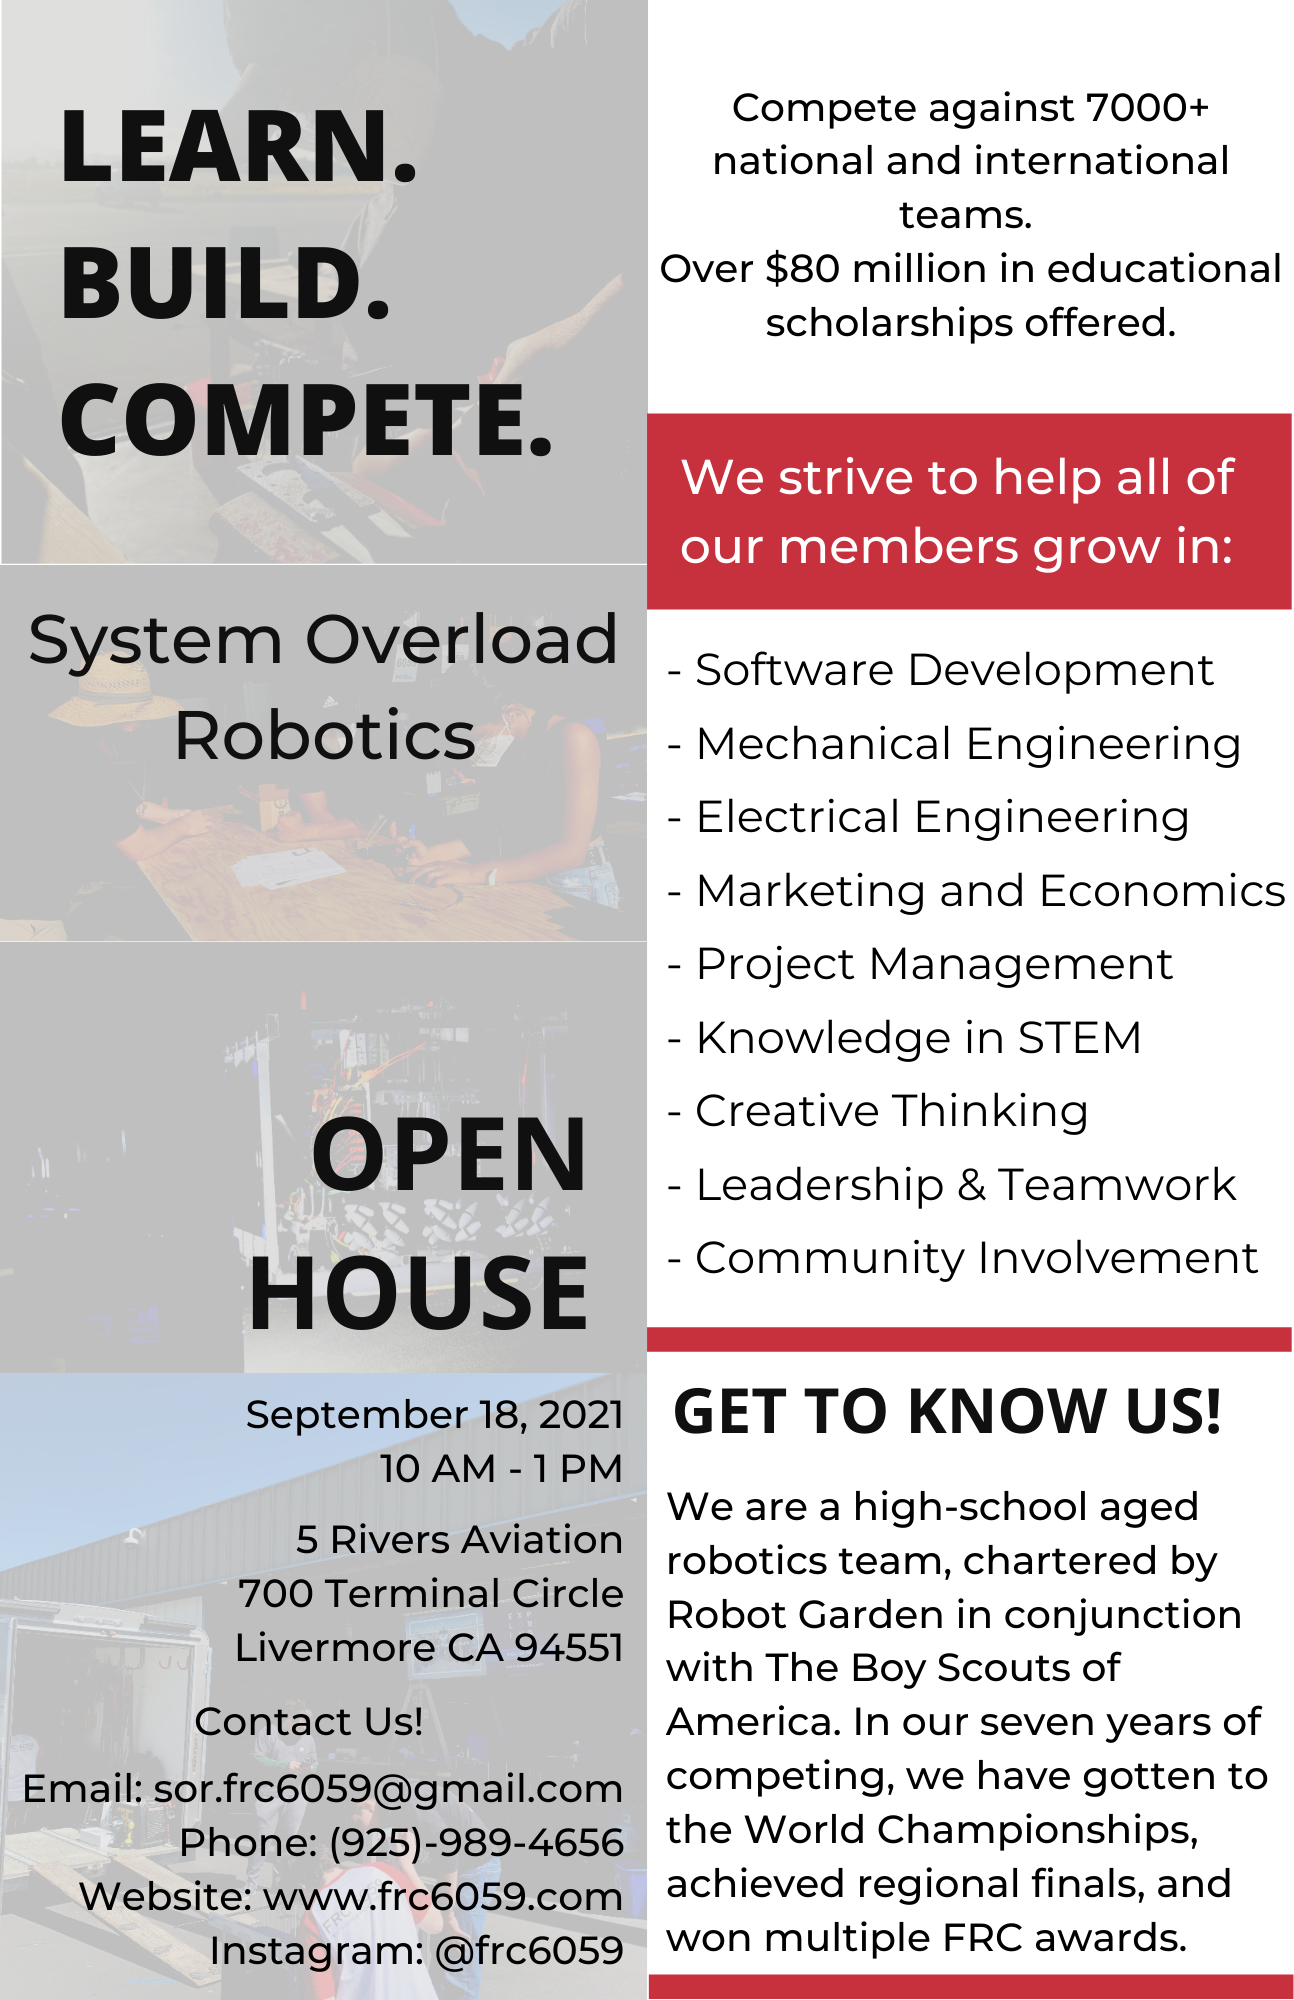 LEARN. BUILD. COMPETE. Open House